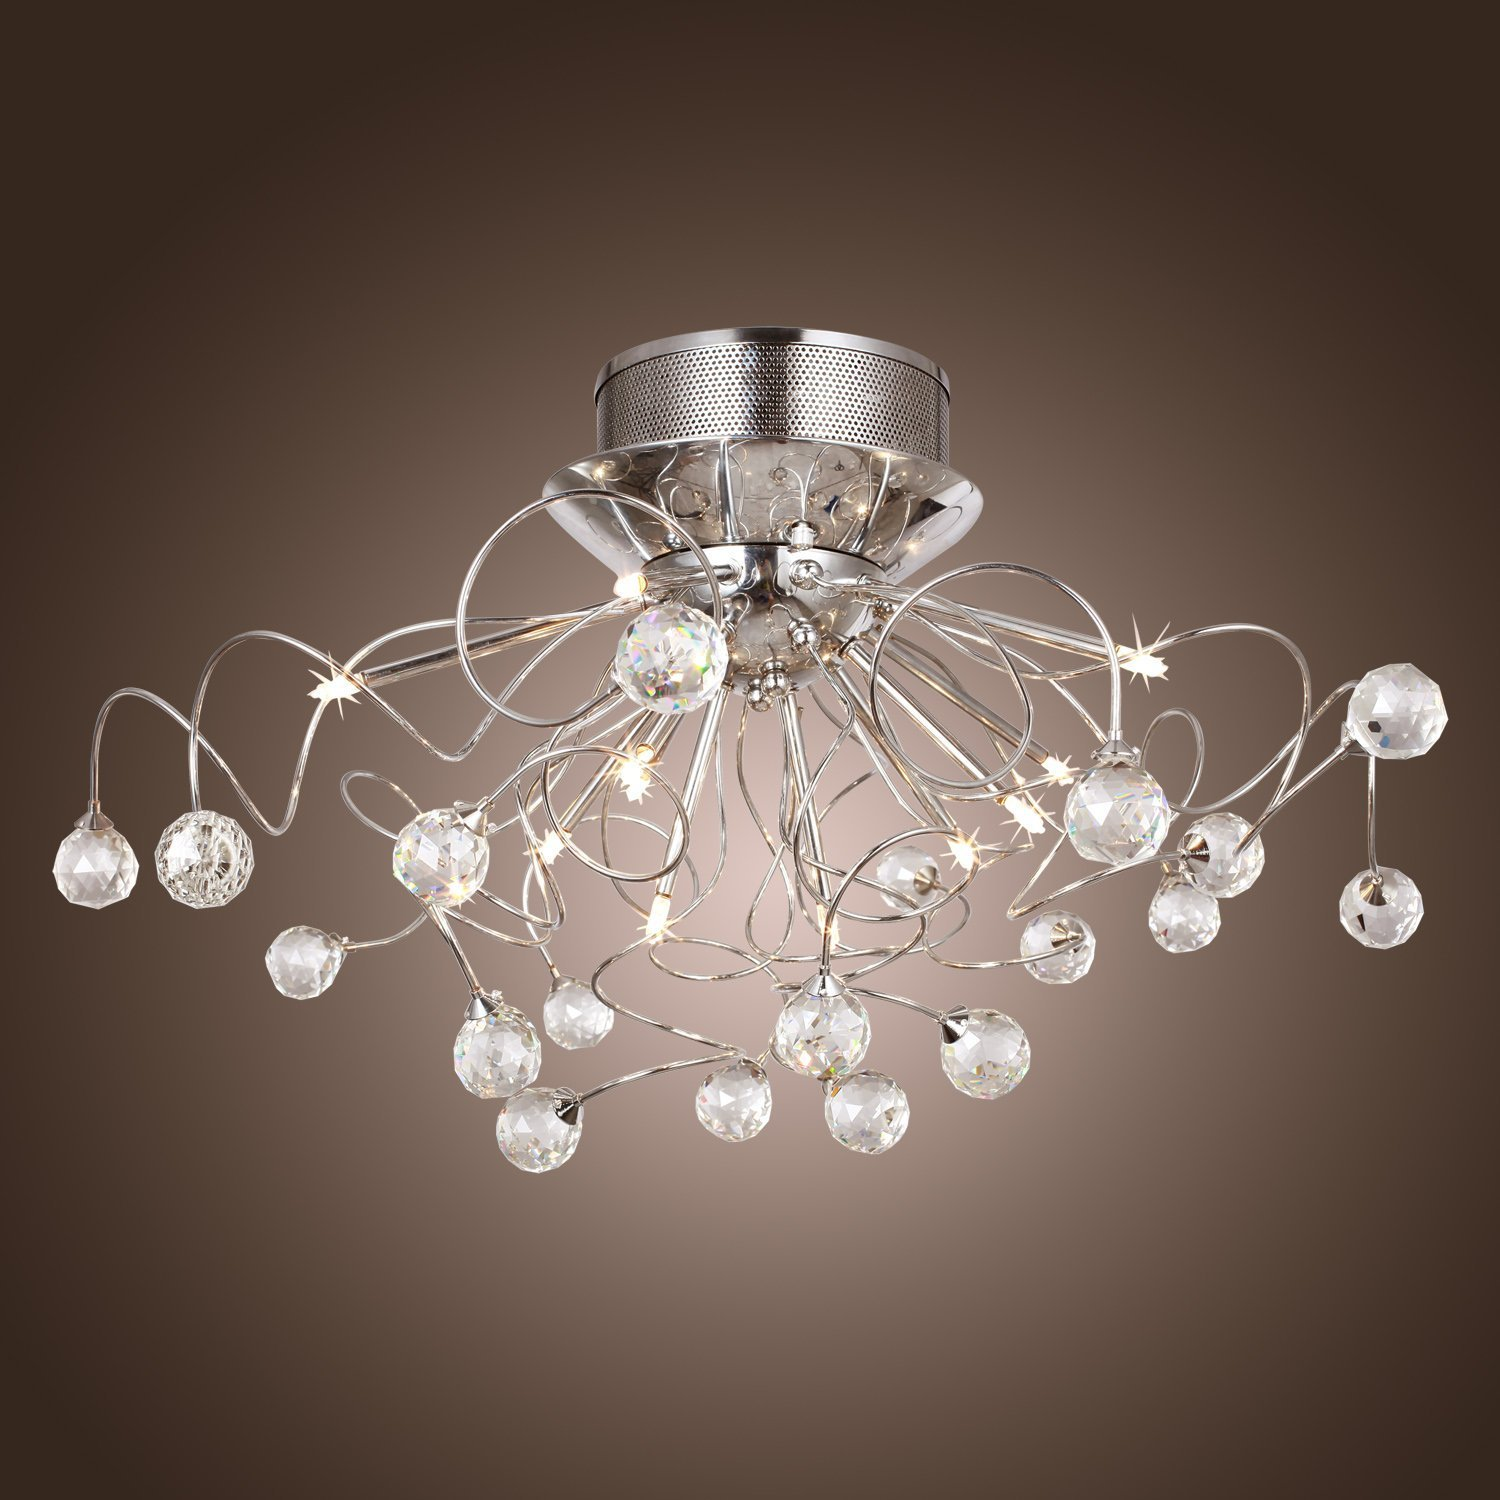 Alfred with crystal chandelier with 11 lights chrome modern alfred with crystal chandelier with 11 lights chrome modern modern chandeliers flush mount ceiling light fixture for hall entrance bedroom aloadofball Gallery